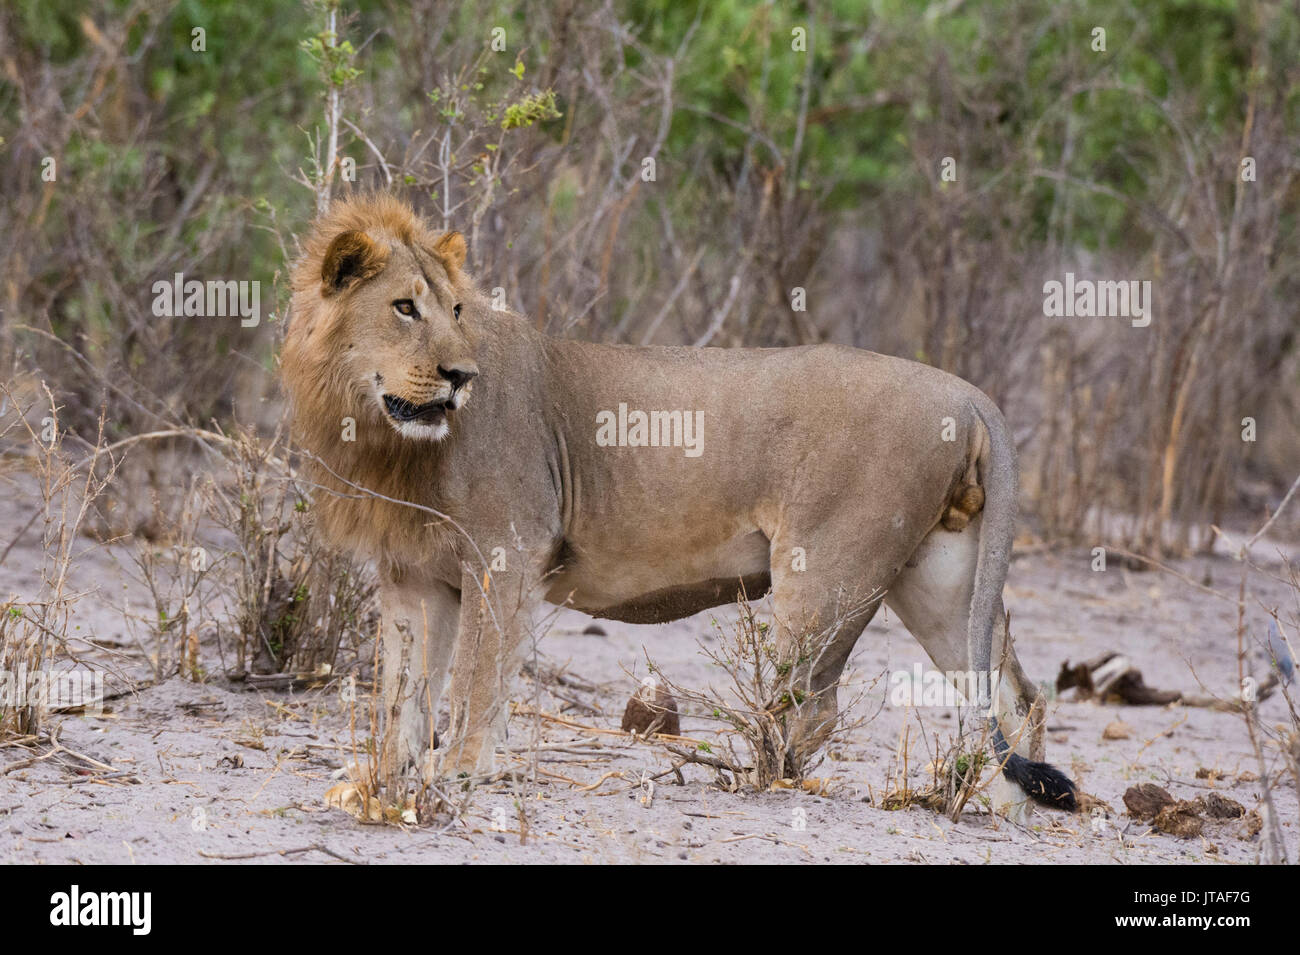 Portrait of a male lion (Panthera leo), Savuti, Chobe National Park, Botswana, Africa Stock Photo